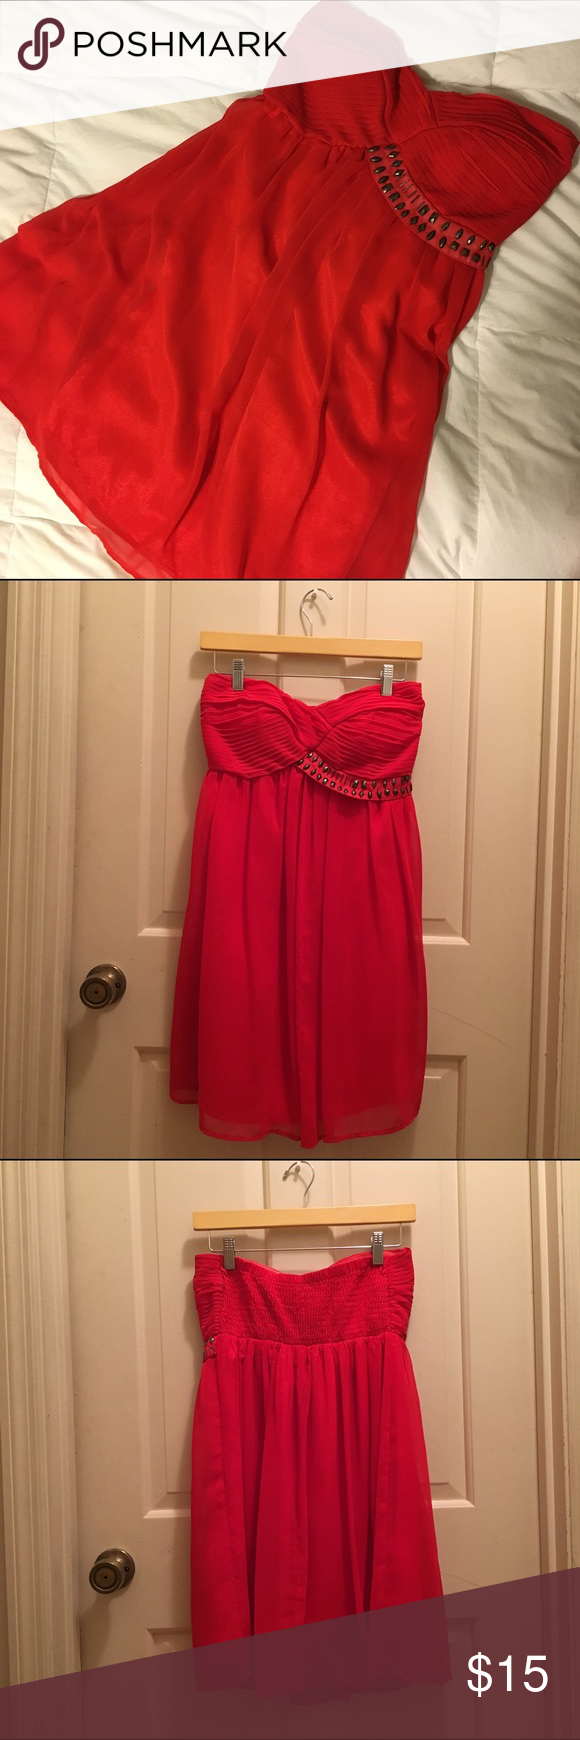 """Red Strapless Dress with Studs Across the Top This dress is strapless but it does have a rubber band along the front top portion. The back portion is a stretchy shirred part. It falls right above the knees (I am 5'3""""). Only worn a couple times (less than 5). Charlotte Russe Dresses Strapless"""